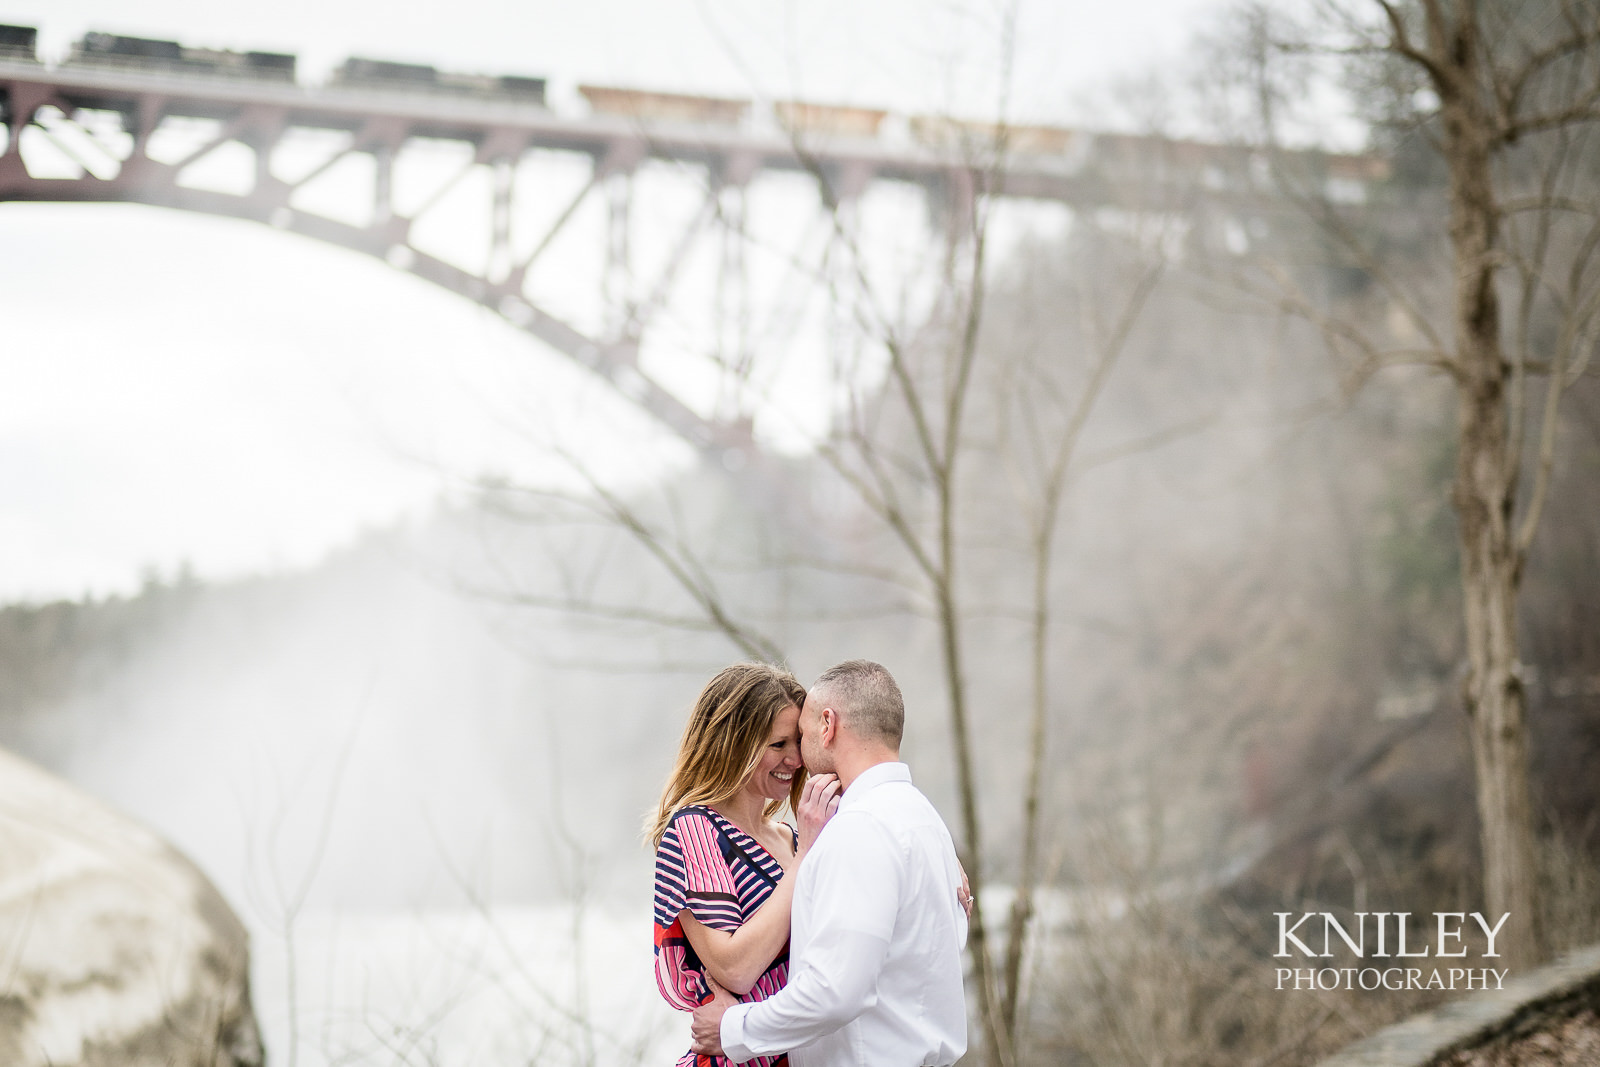 029 - Letchworth State Park engagement picture - XT3A3363.jpg